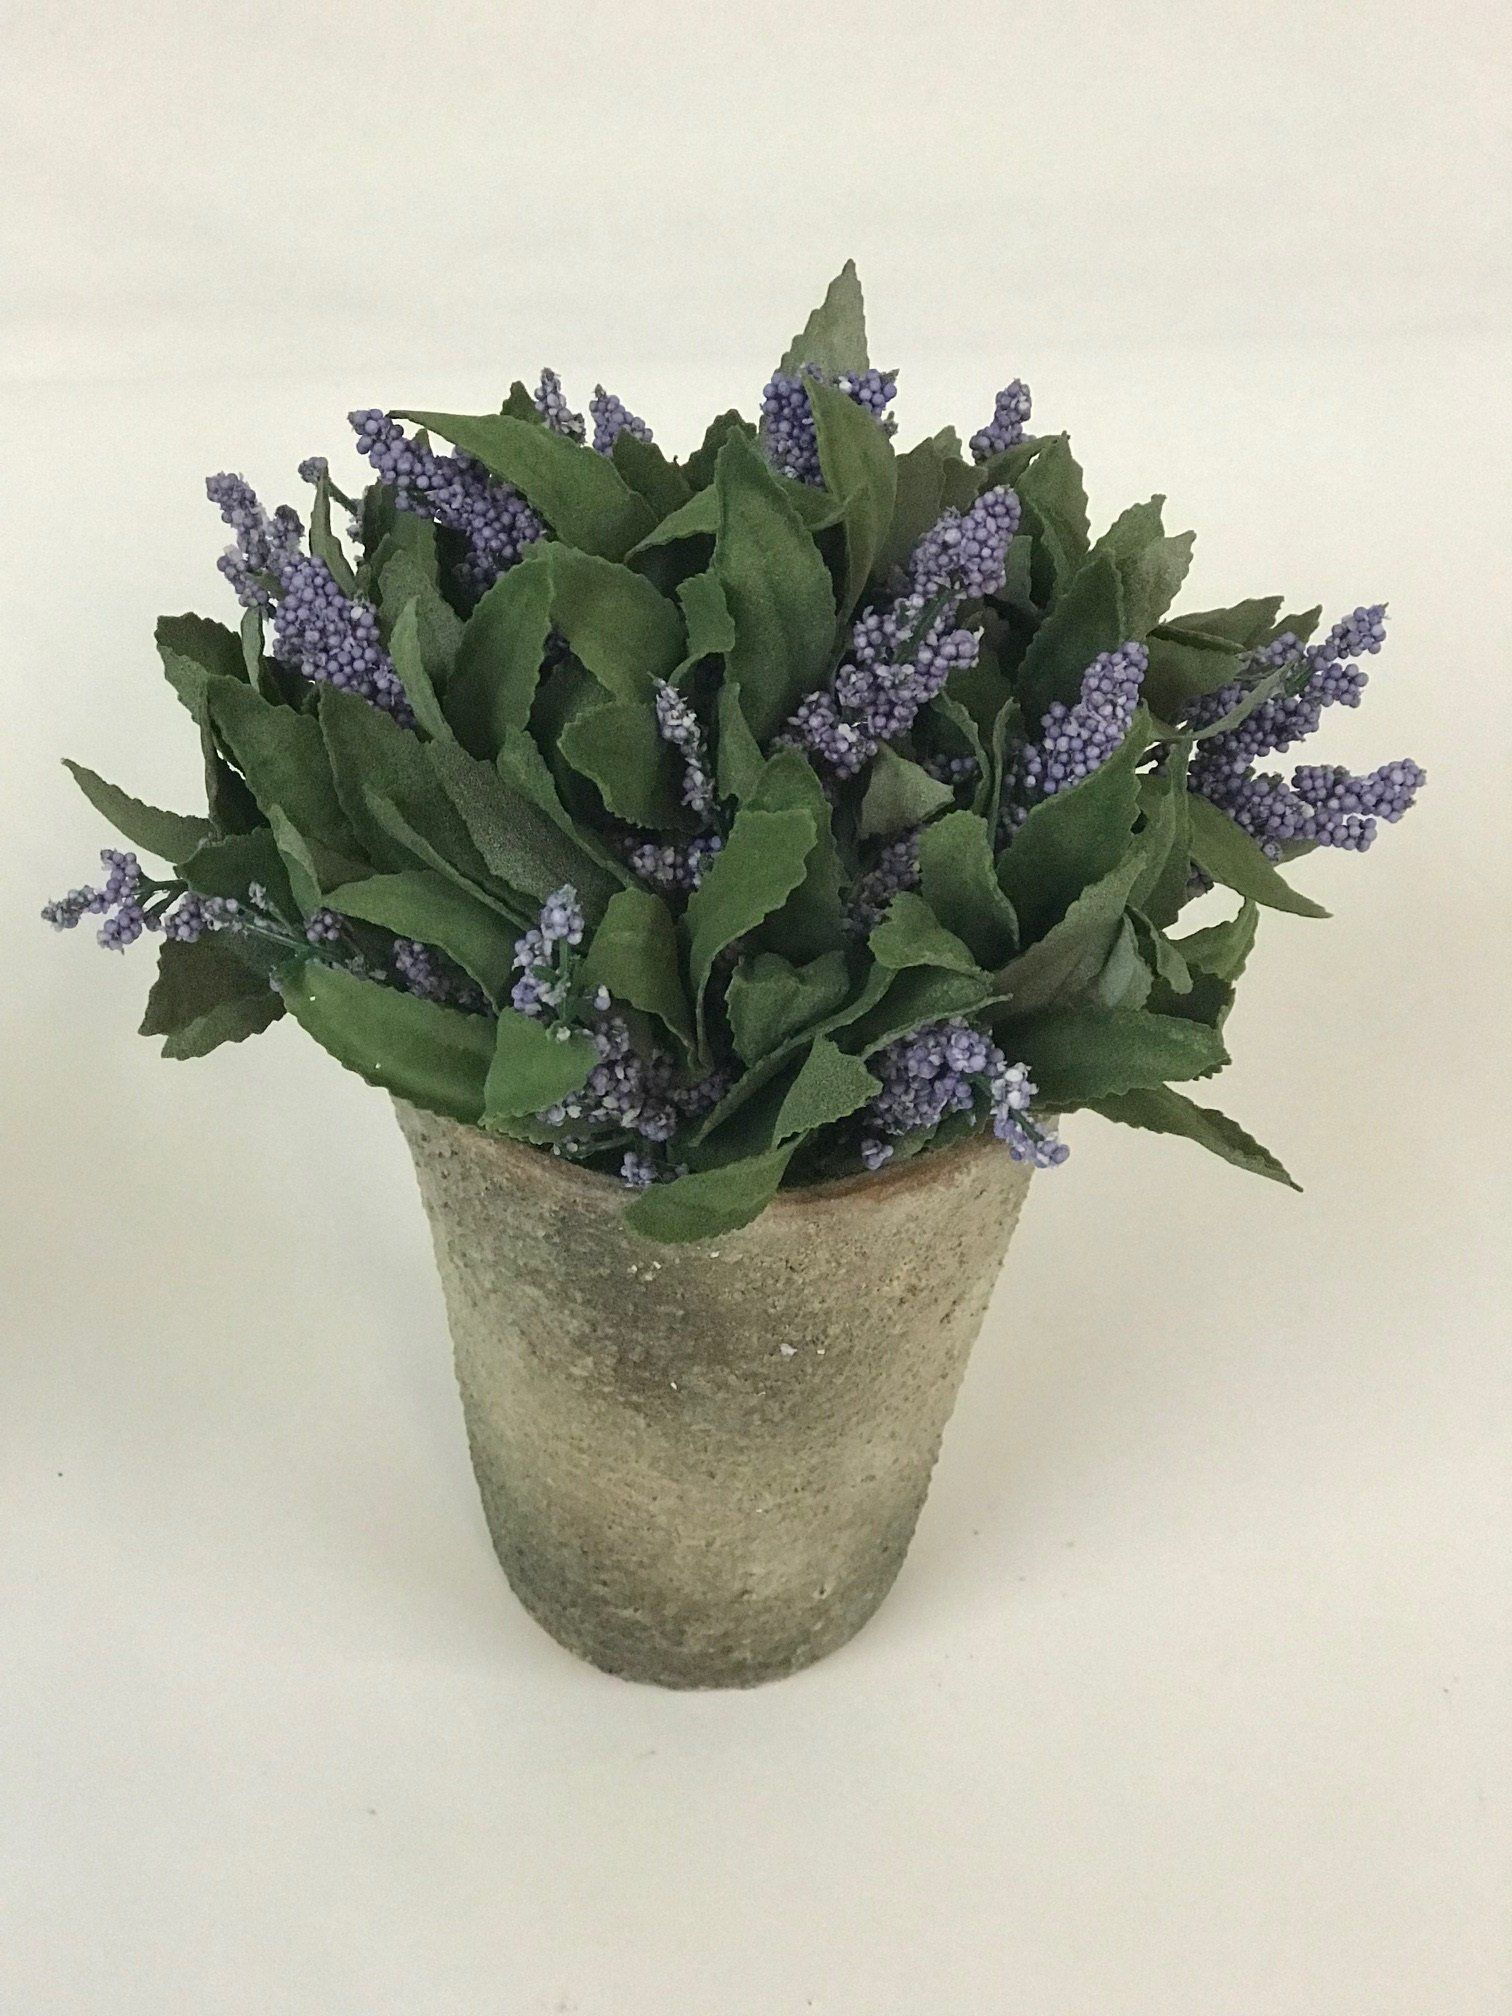 Lavender Plant In Rustic Pot Artificial Flowers Home Decor